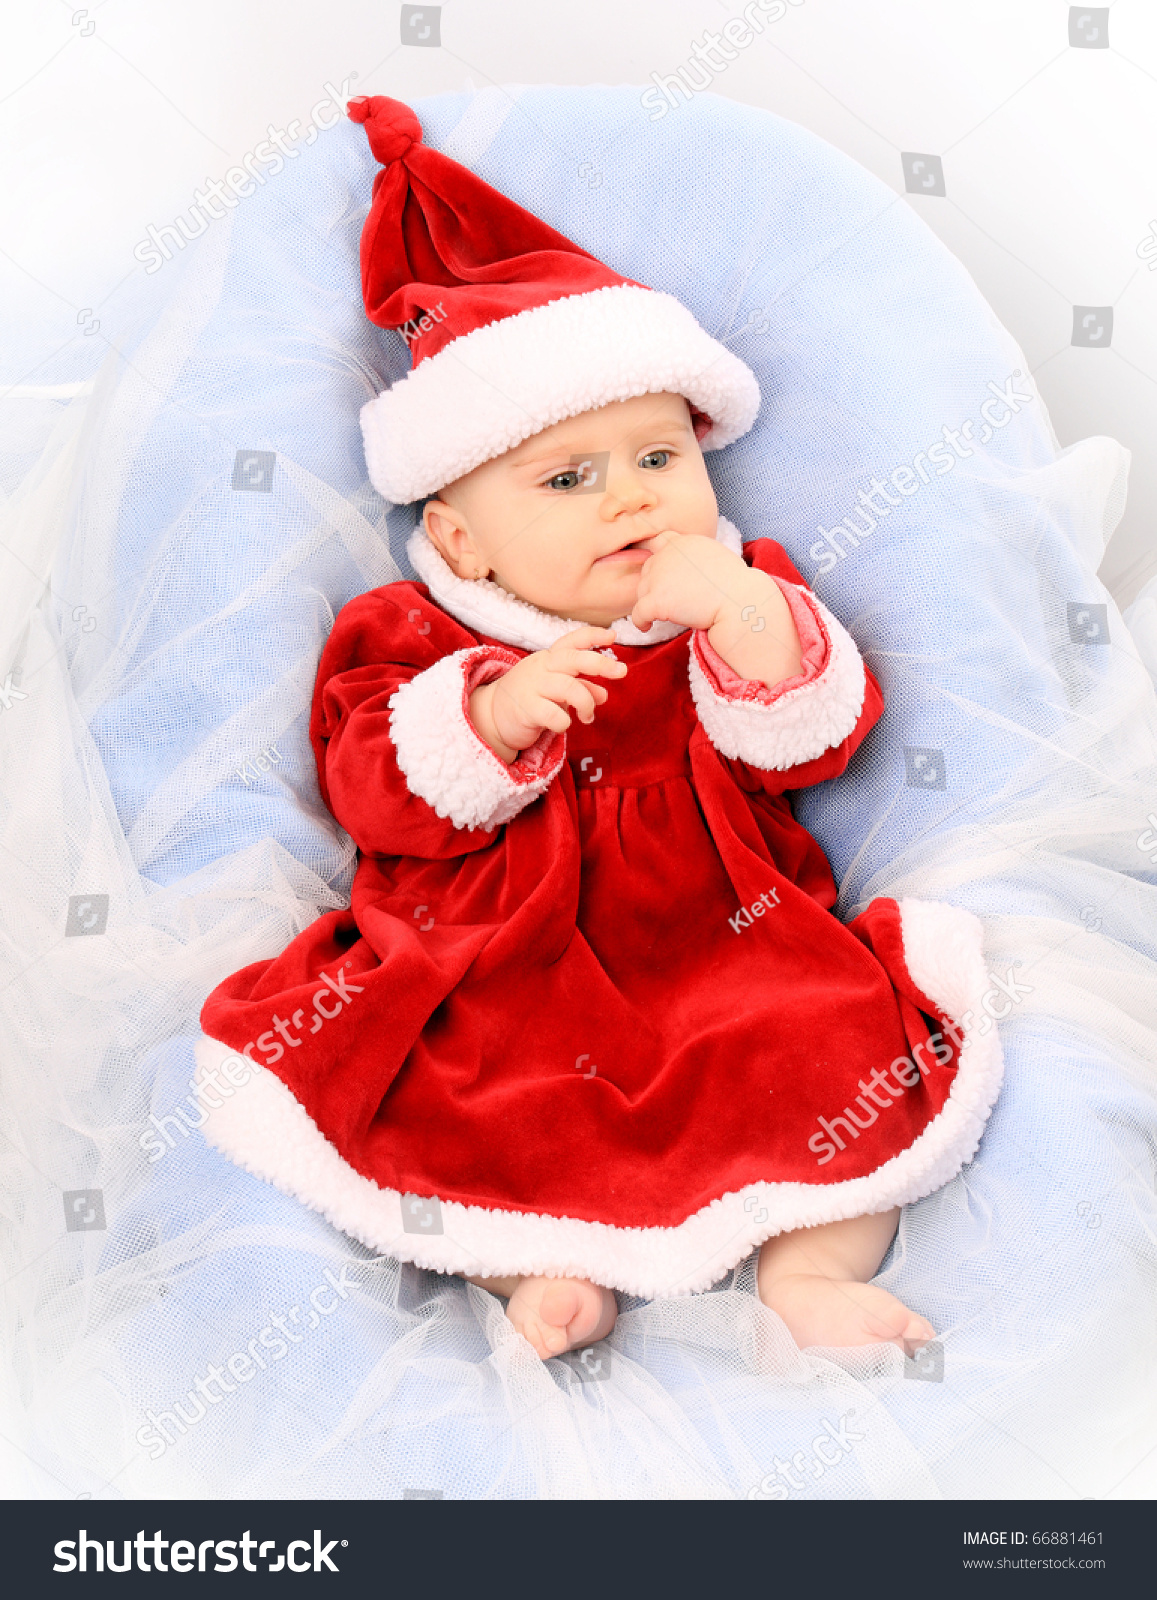 Cute baby dressed santa great calender stock photo edit now cute baby dressed as santa great for calender and christmas greetings m4hsunfo